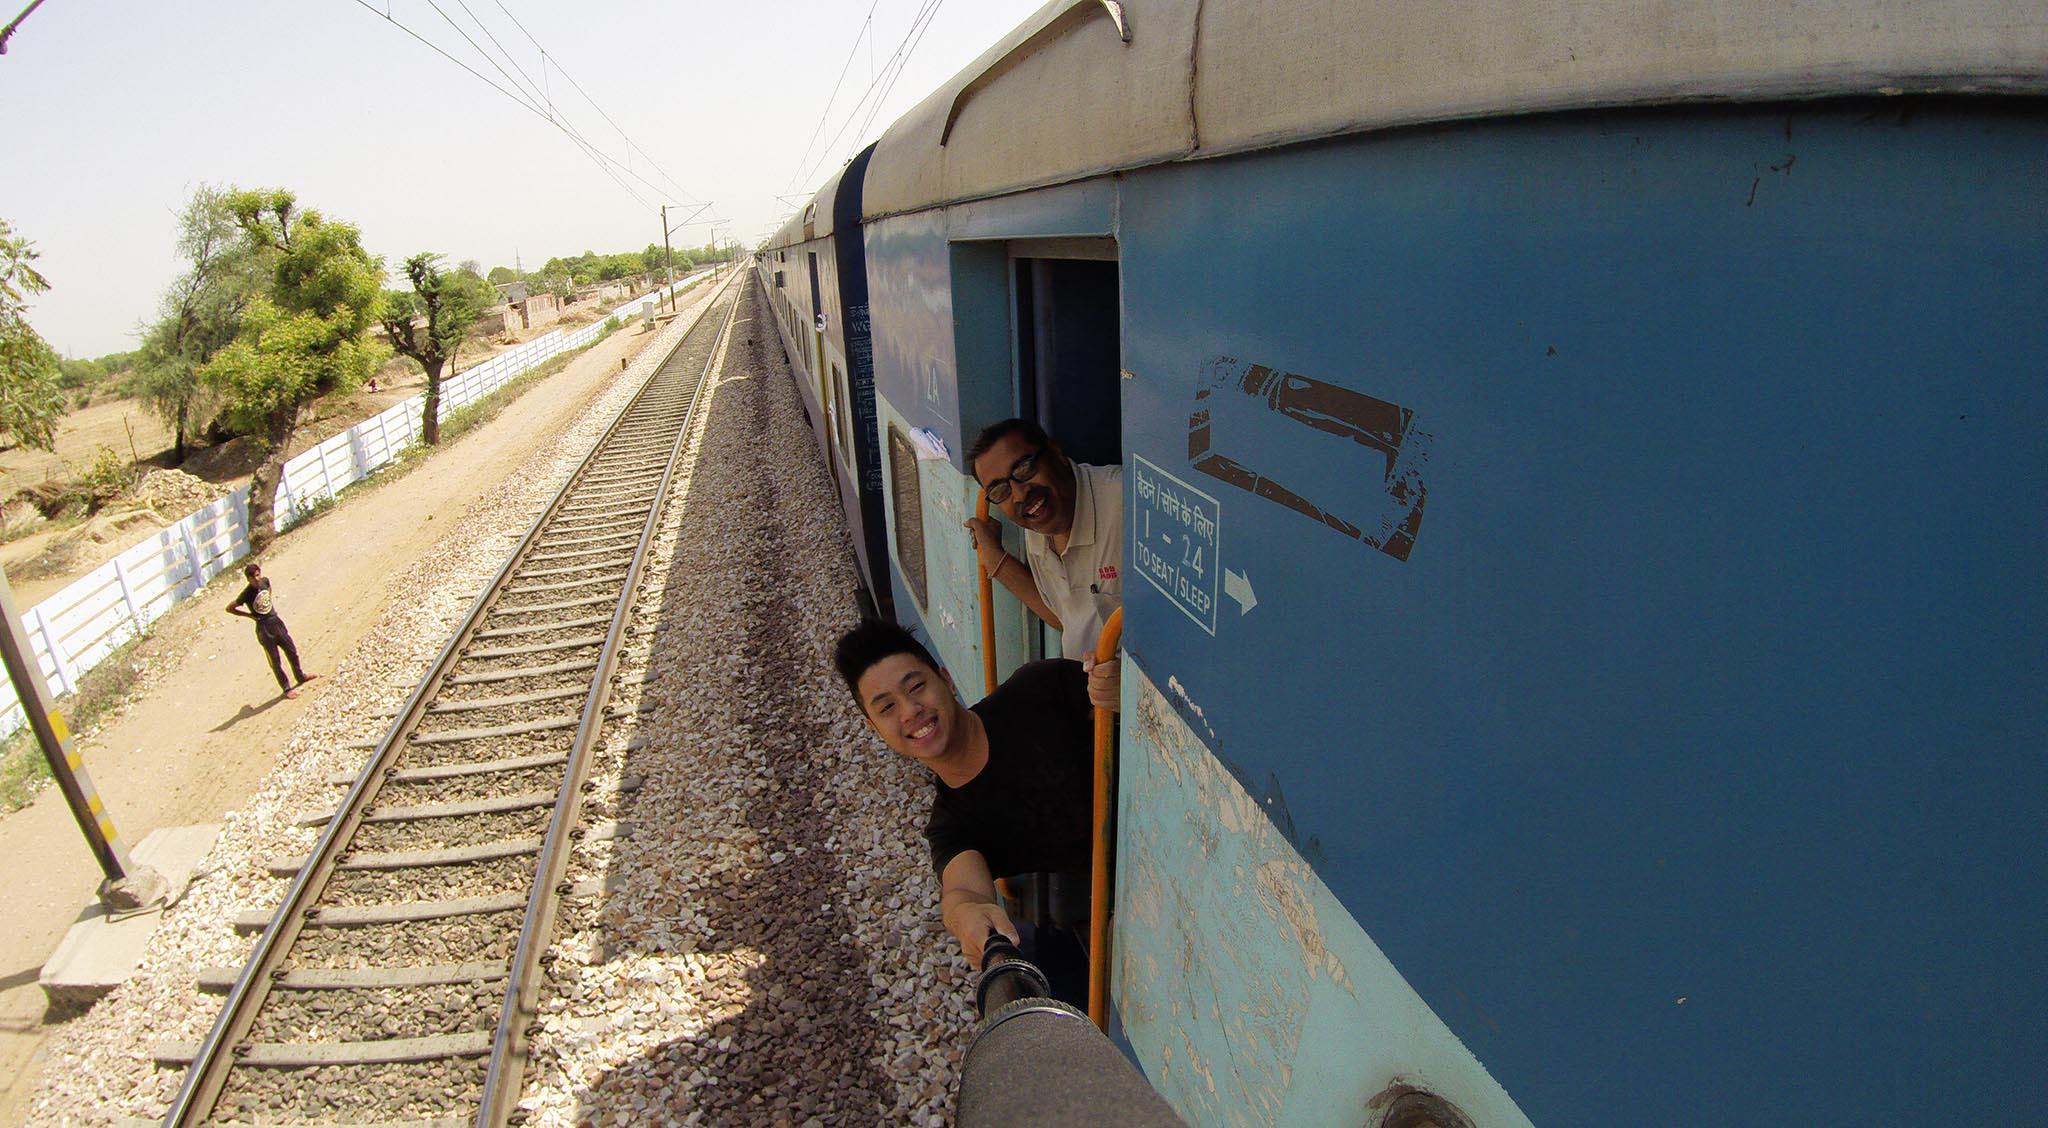 I met Mr Tilak in my 6 hours train ride. Got invaluable knowledge on how to survive in India, especially when alone.